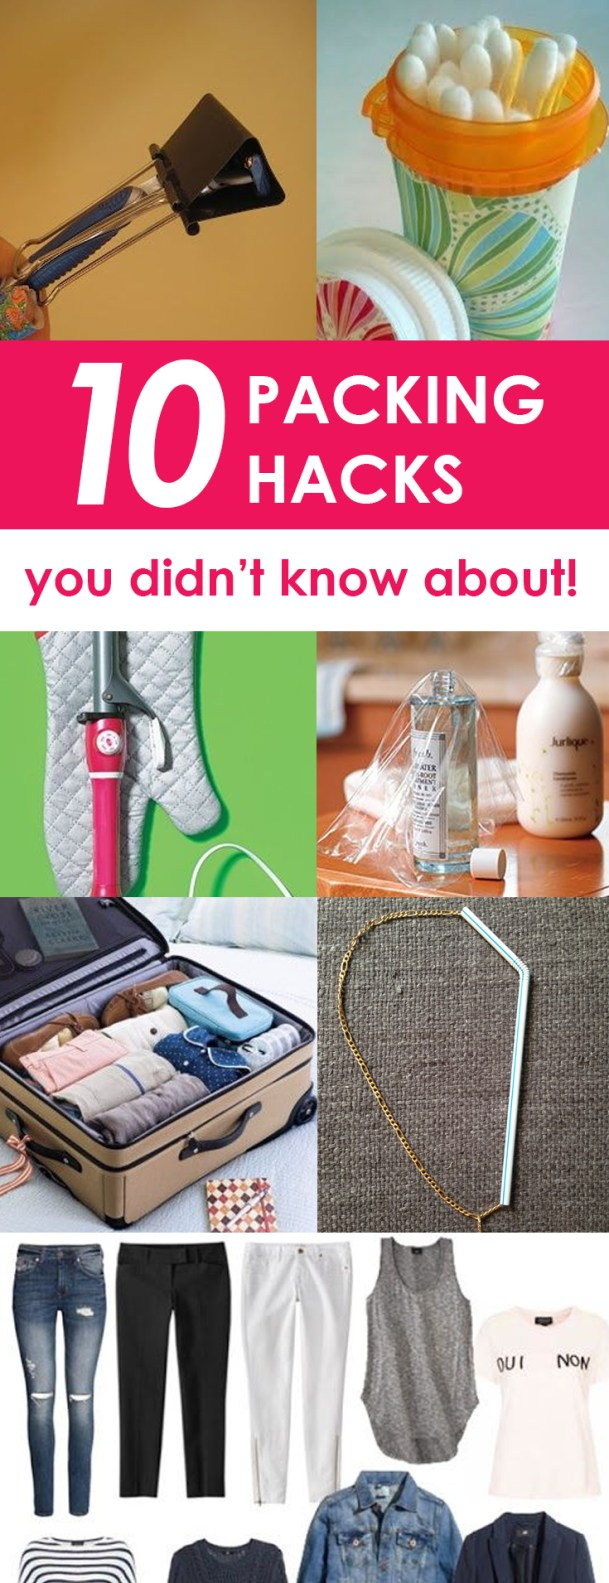 11 Packing Hacks You Didn't Know About